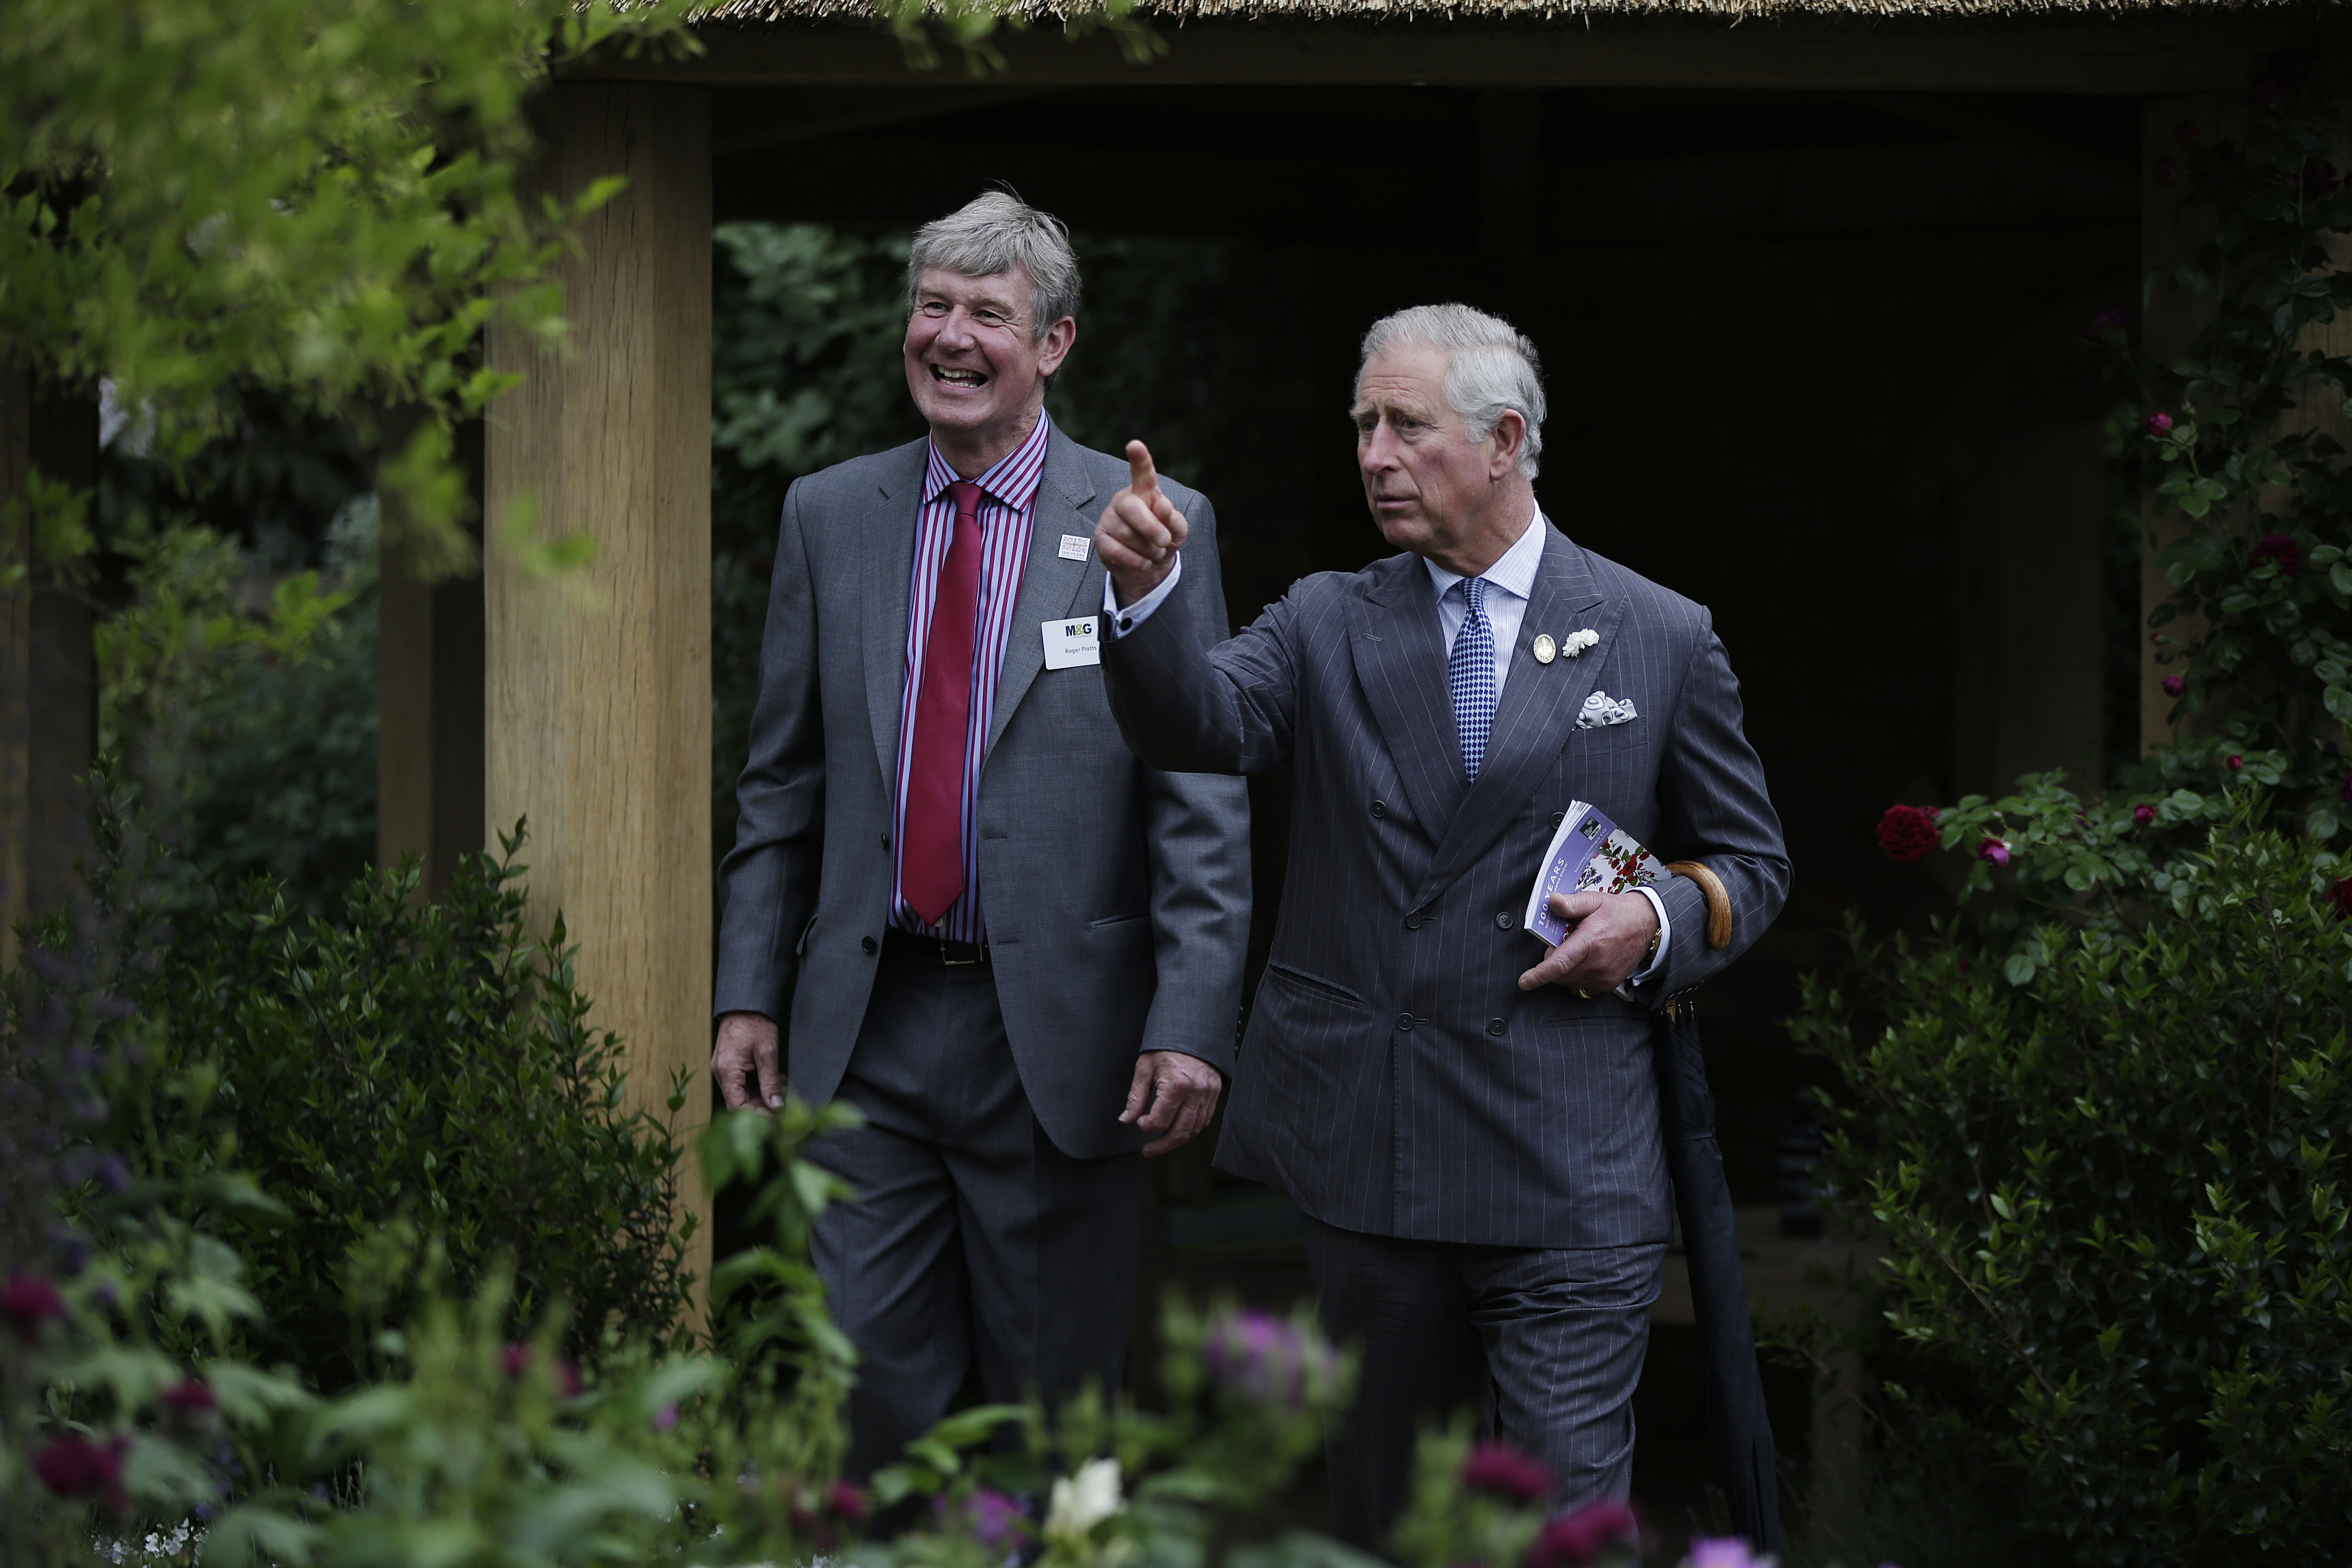 Prince Charles and Roger Platts discussing Roger's Garden at The Chelsea Flower Show